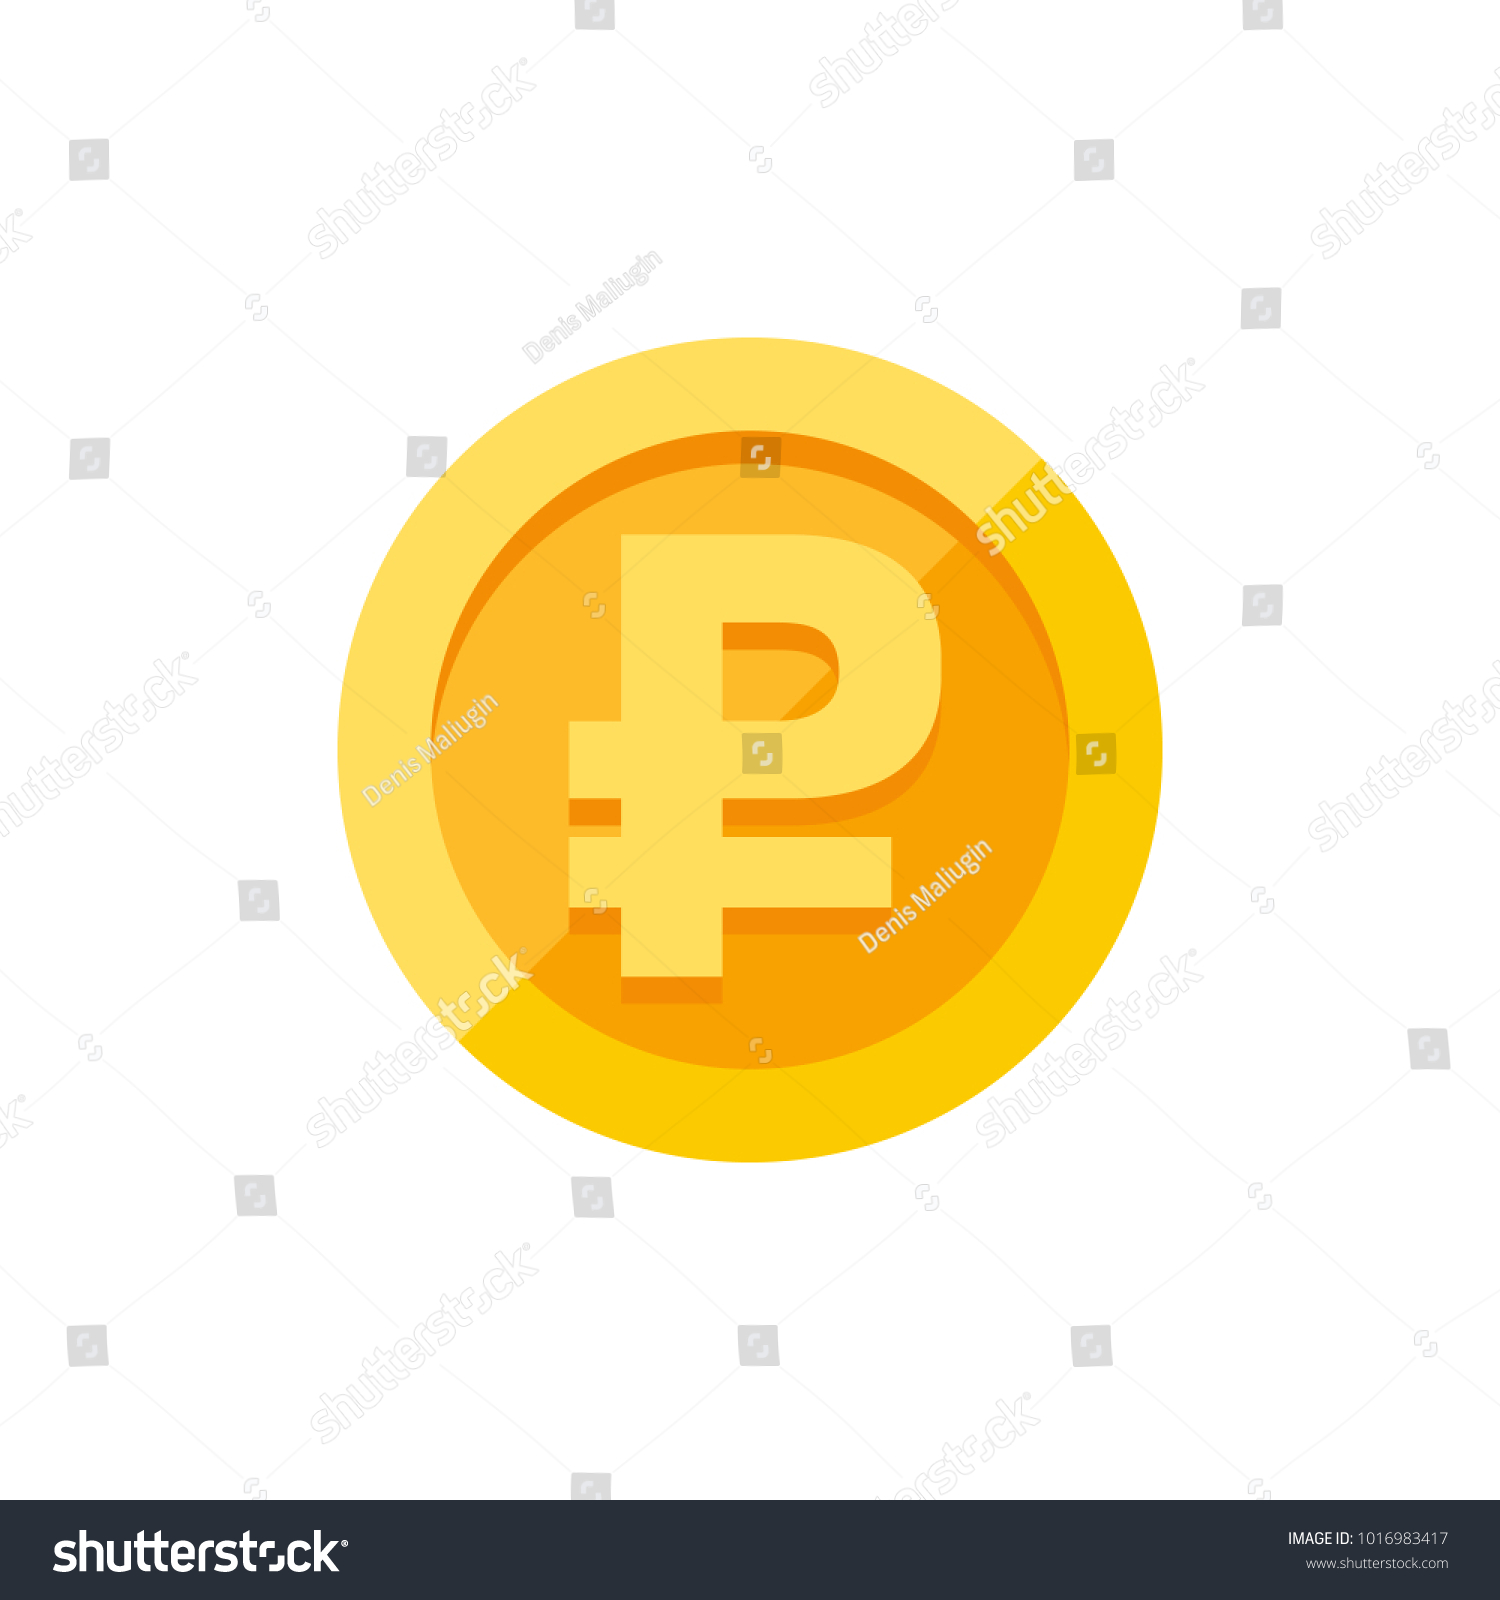 Ngn currency symbol choice image symbol and sign ideas philippine currency symbol images symbol and sign ideas russian rouble currency symbol on gold stock vector biocorpaavc